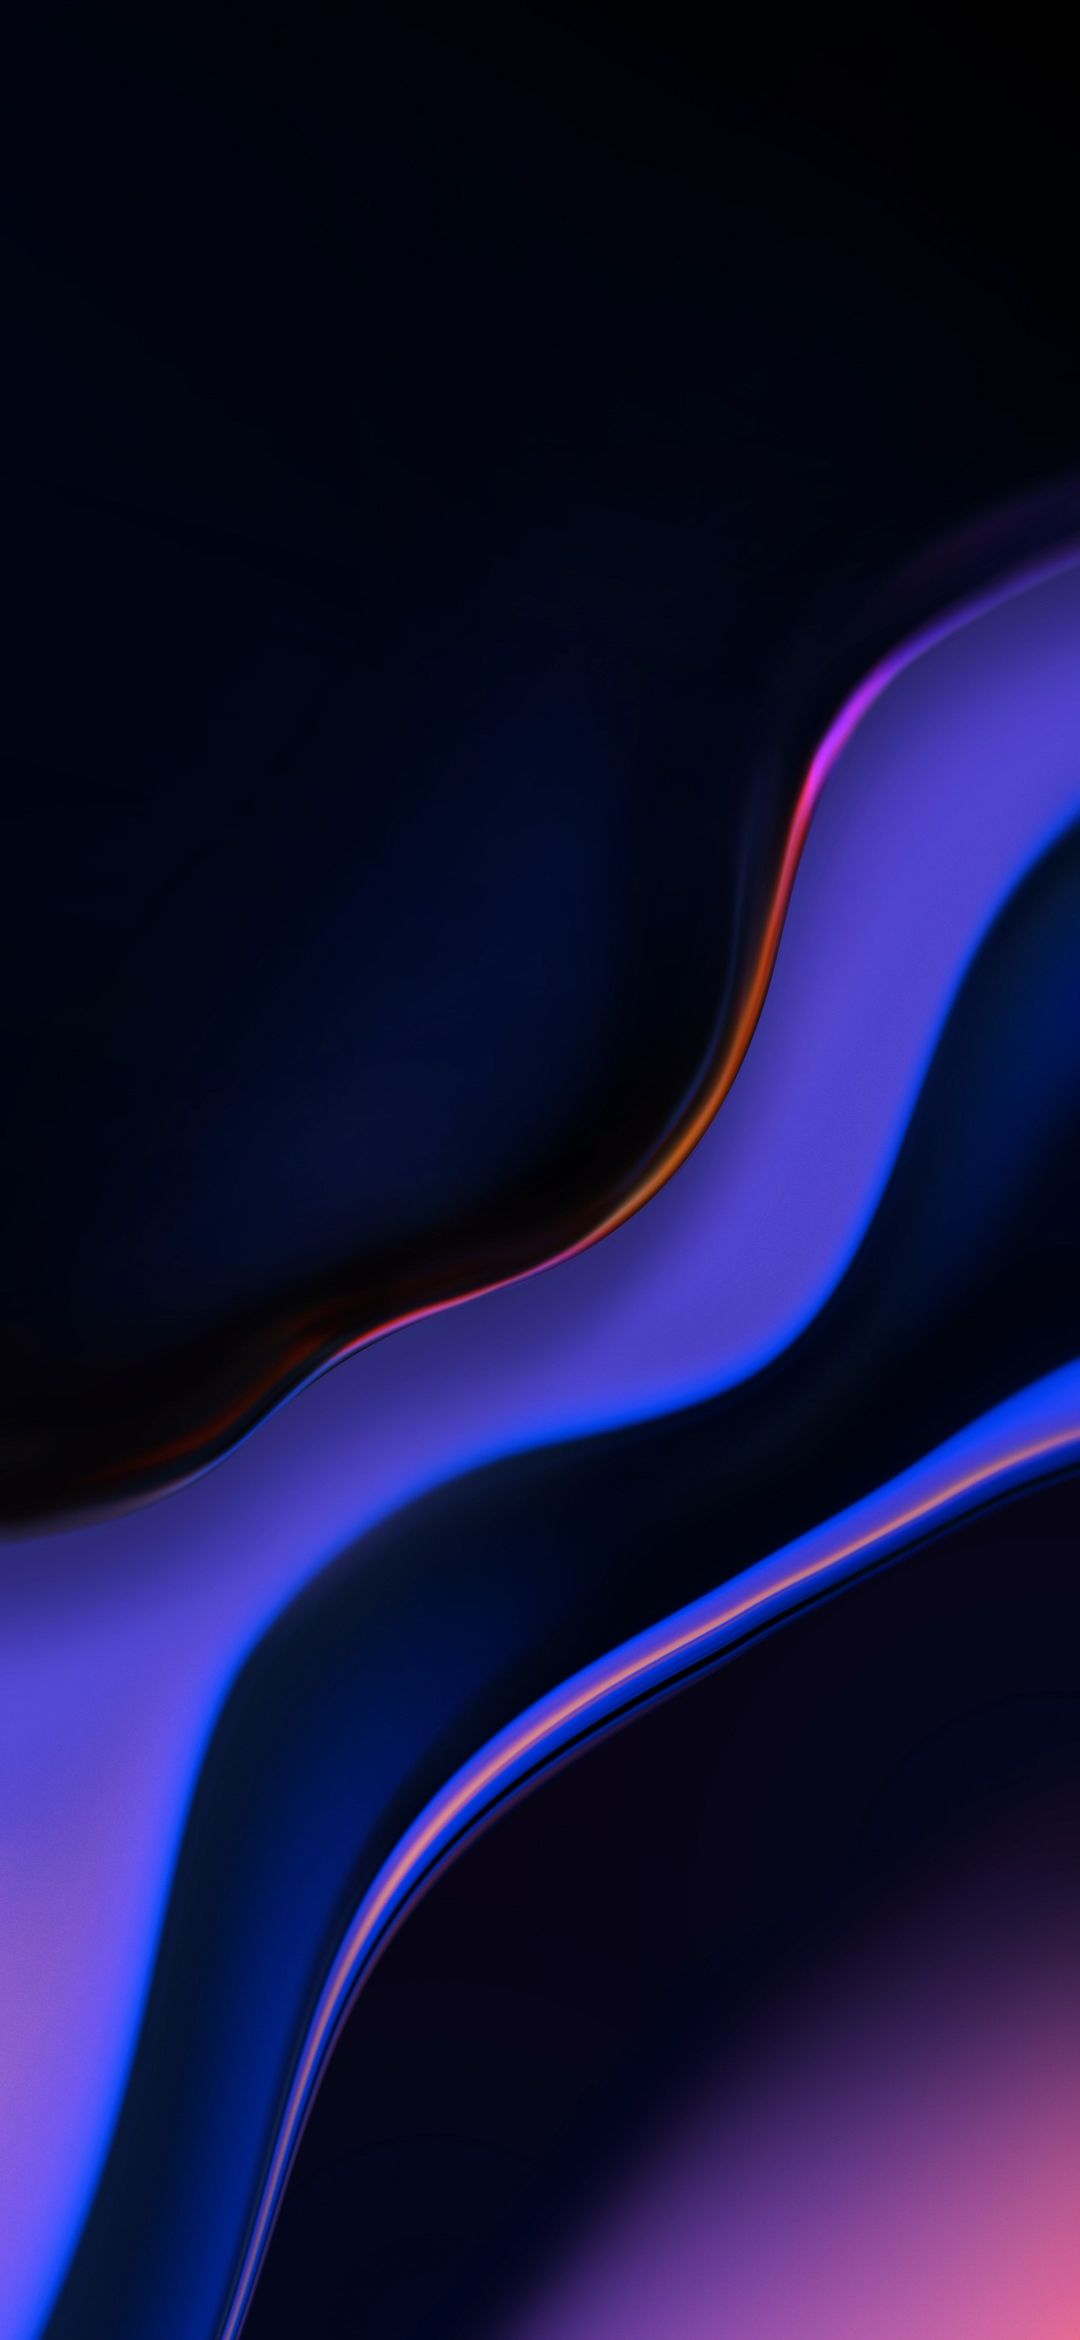 Oneplus 6t Wallpapers Fhd 4k Never Settle Download Oneplus Wallpapers Hd Phone Wallpapers Android Wallpaper